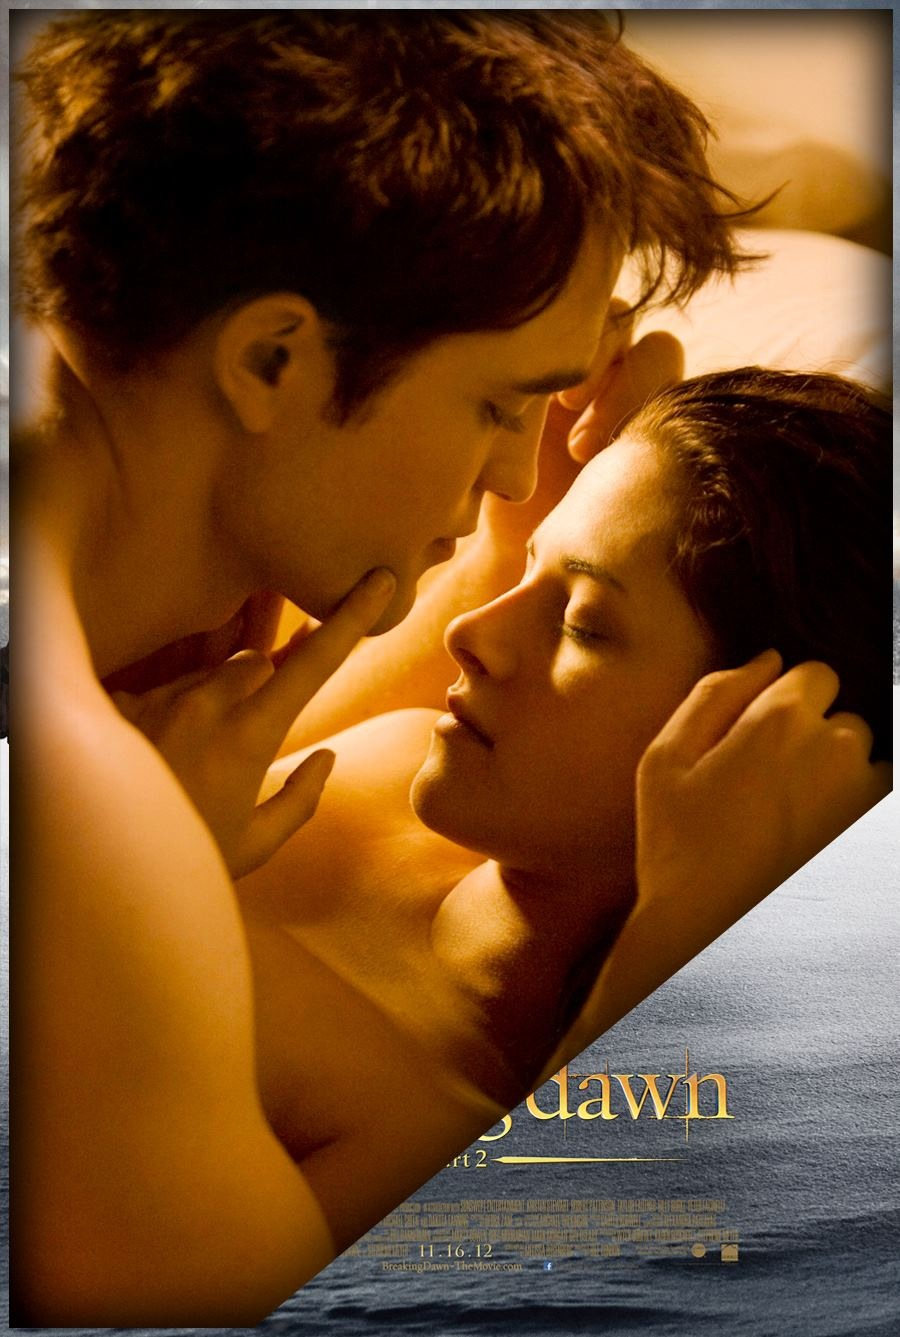 www.fb.com/BreakingDawn